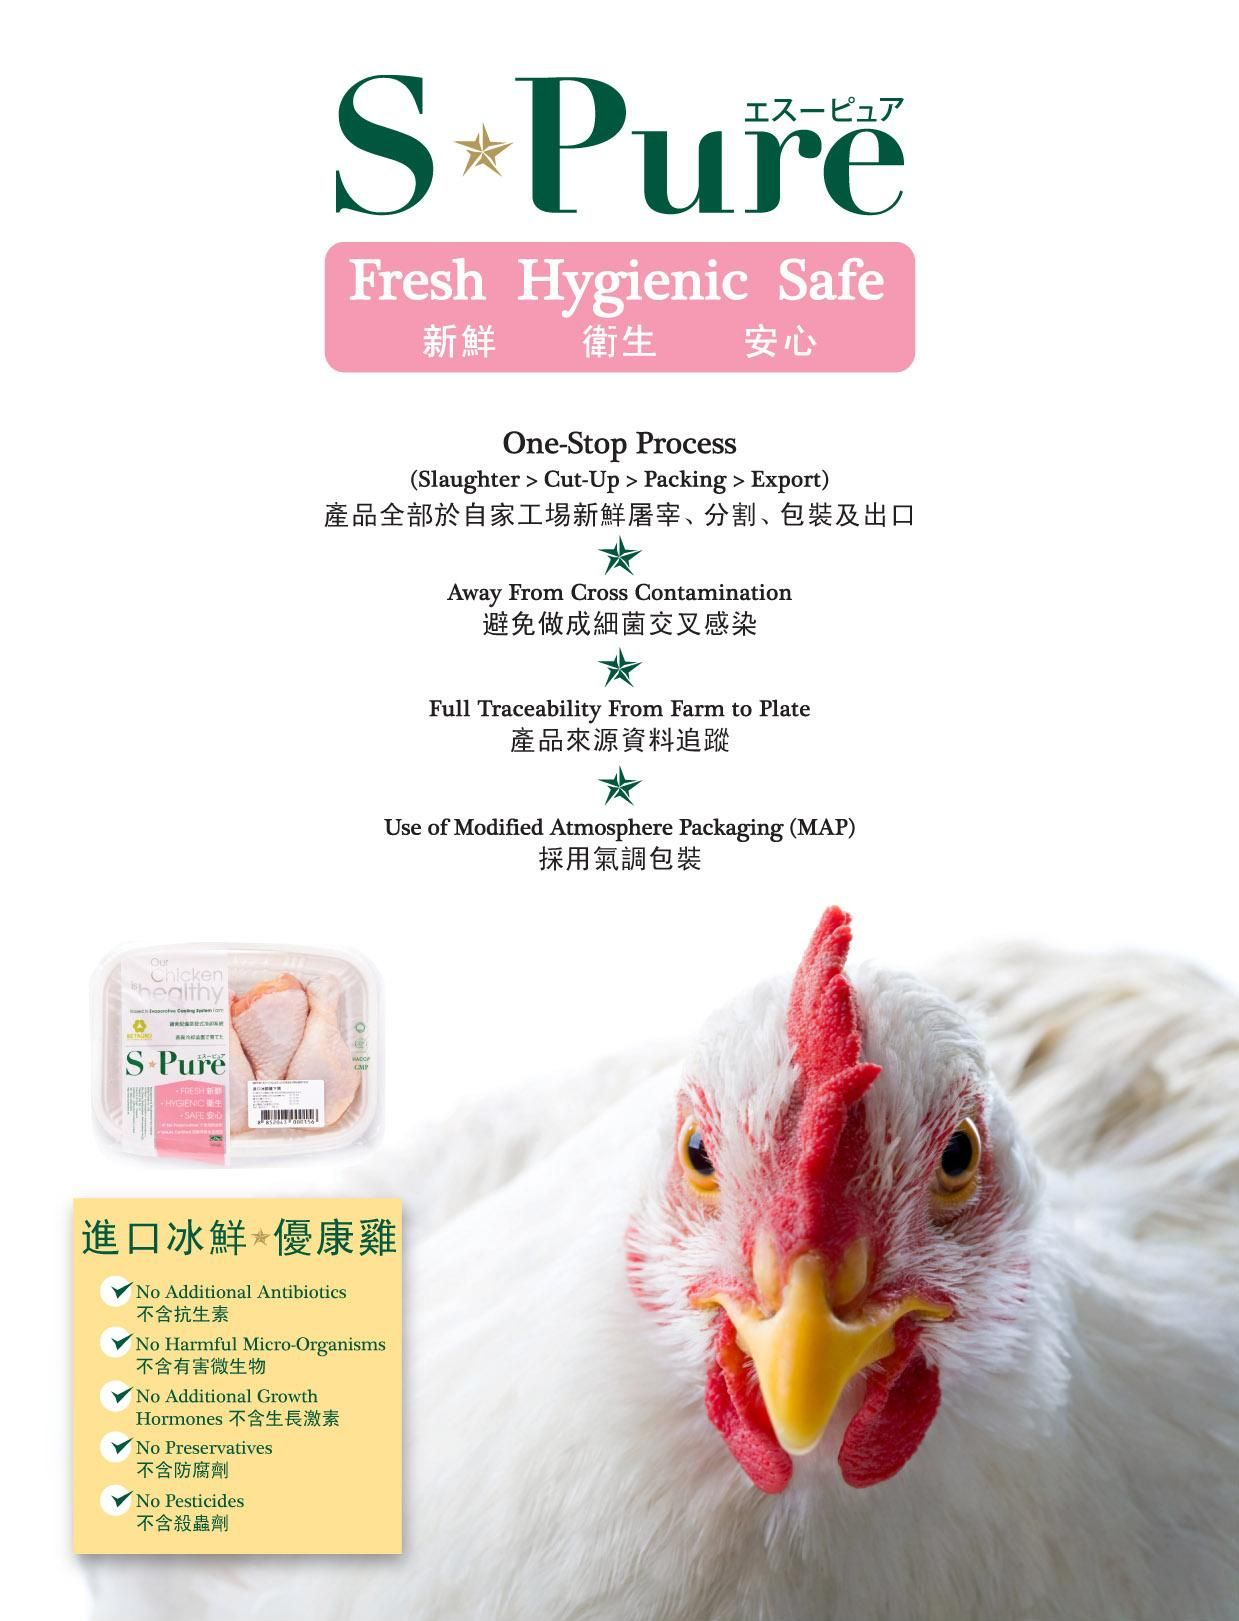 Betagro's S-Pure Chicken products are produced under the ...